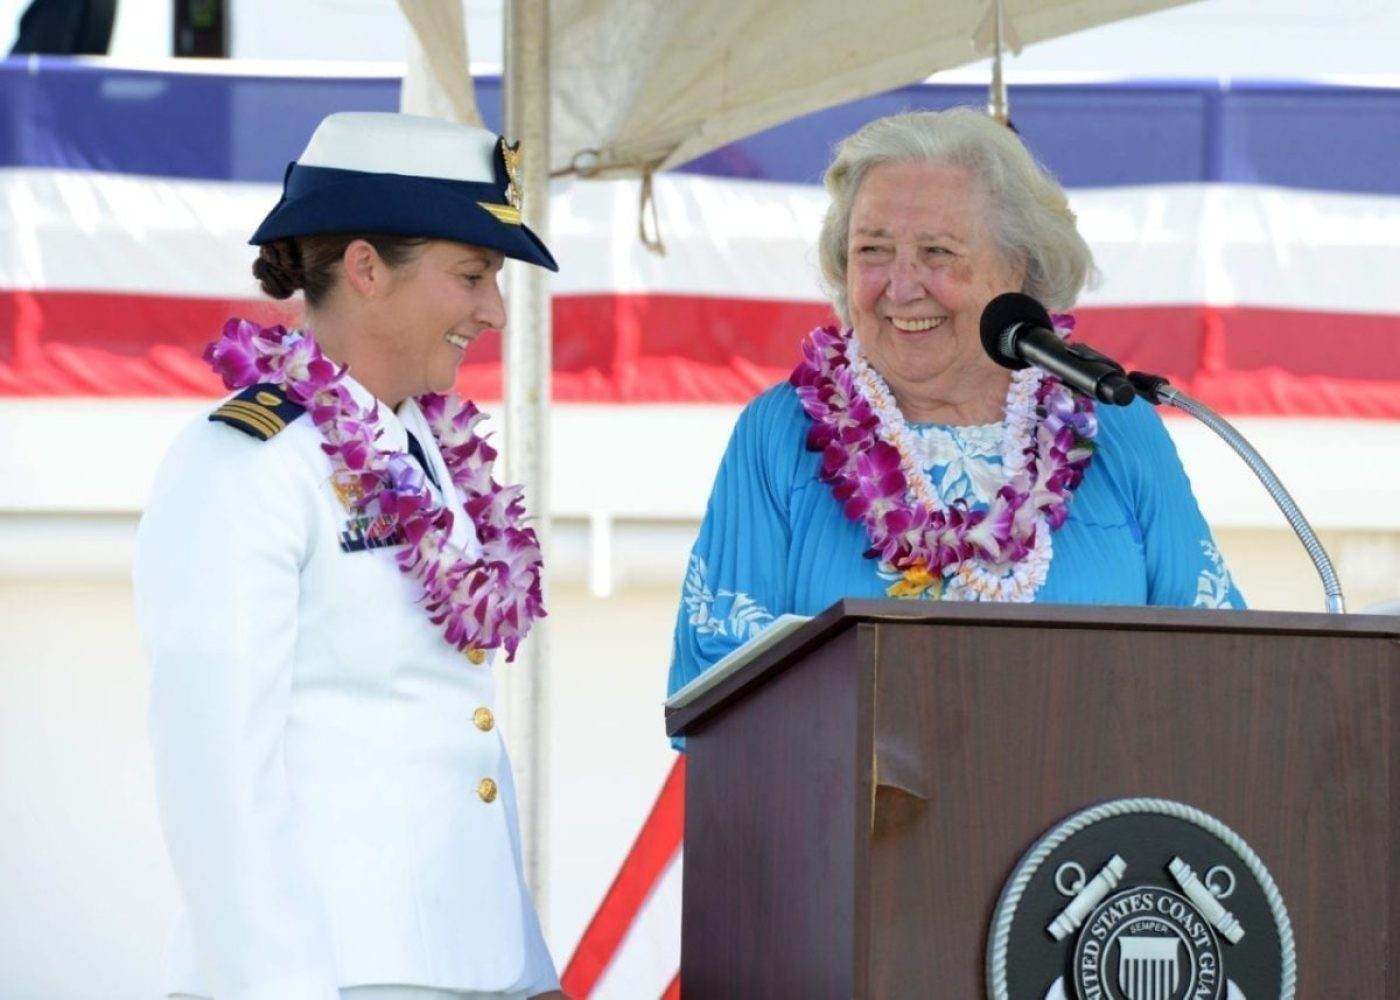 Margaret Hart Davis, the sponsor of the Coast Guard Cutter William Hart (WPC 1134), brings the cutter to life with Lt. Cmdr. Laura Foster, the cutters commanding officer, during a commissioning ceremony at Base Honolulu, Sept. 26, 2019. Davis is the daughter of William Hart who was a Gold lifesaving medal recipient and a World War II veteran. (U.S. Coast Guard photo by Petty Officer 3rd Class Matthew West/Released)